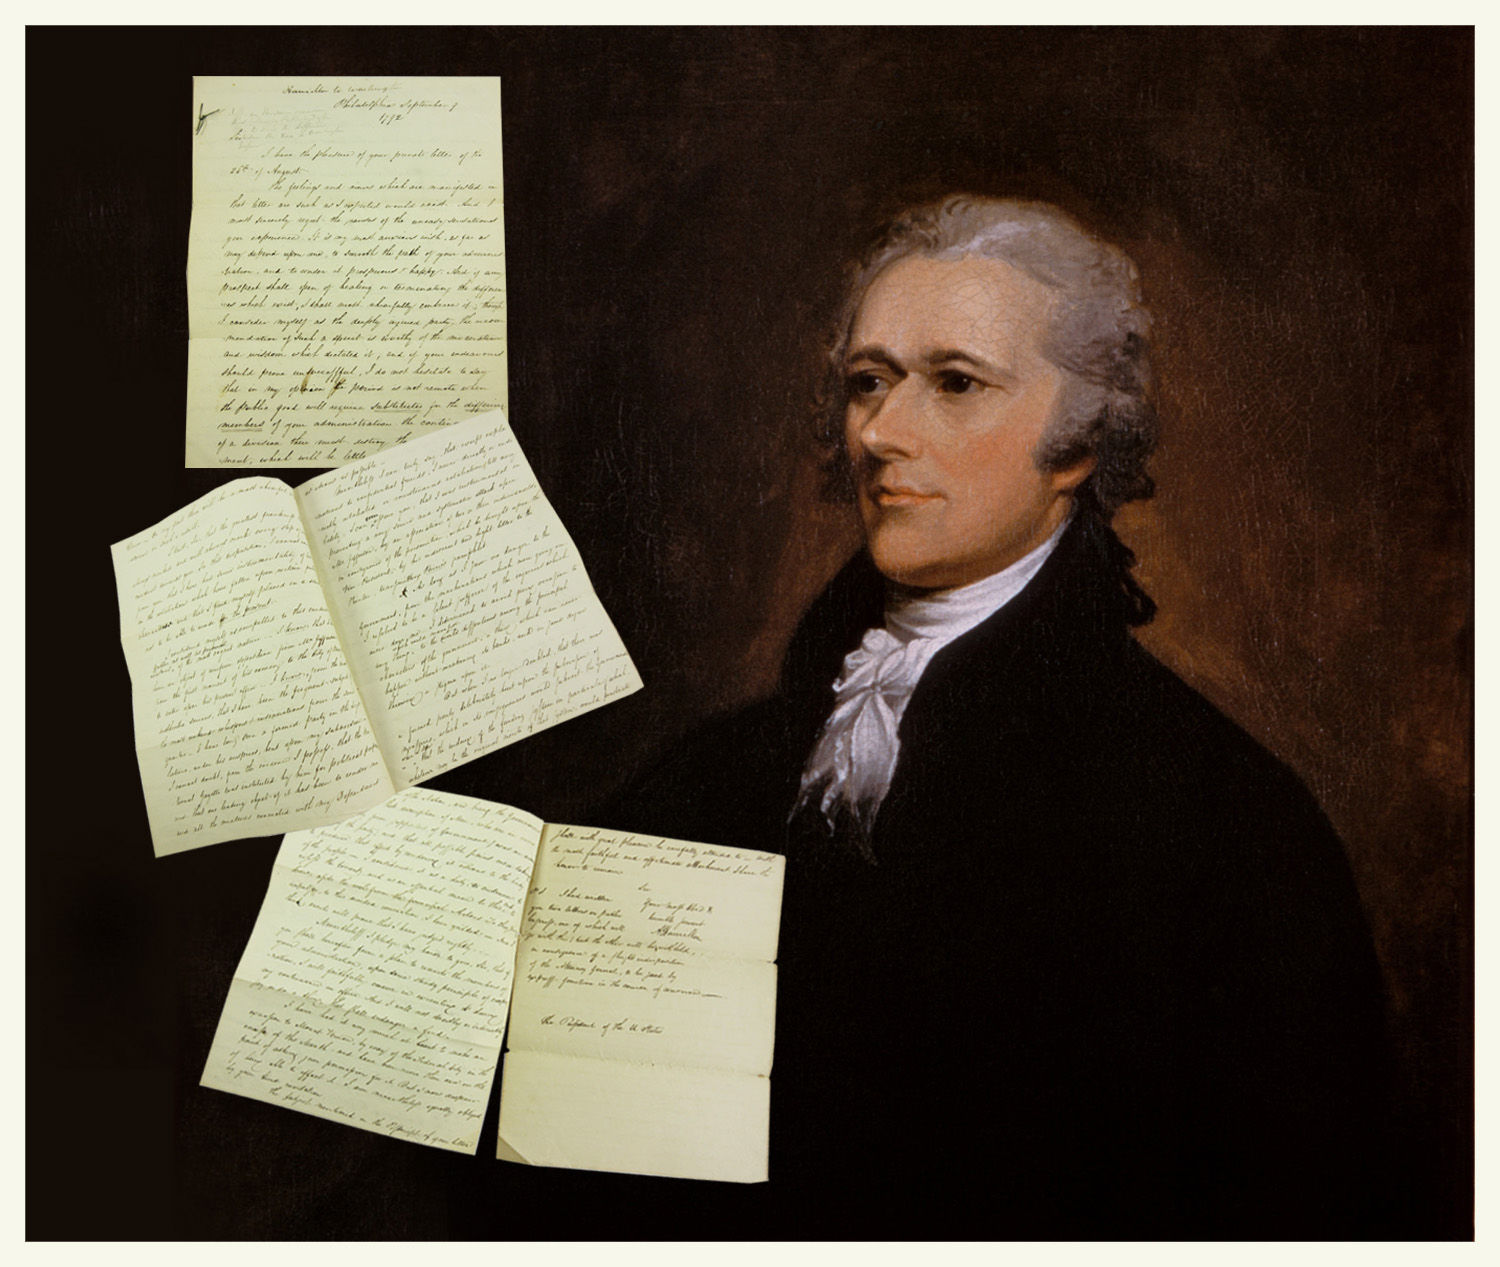 Hamilton letter to Washington